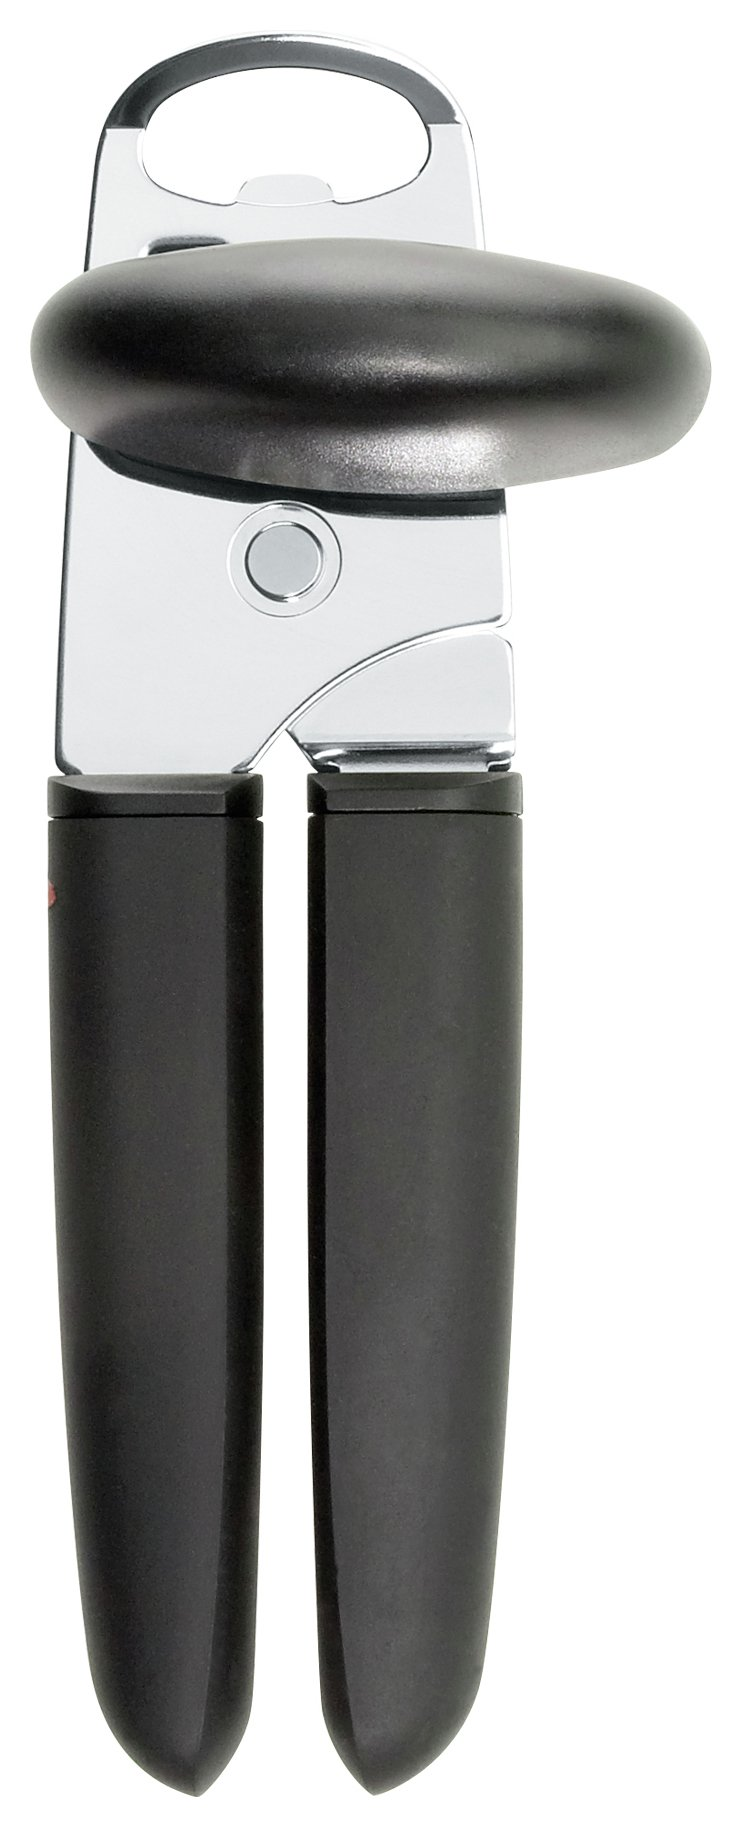 OXO SoftWorks Can Opener.